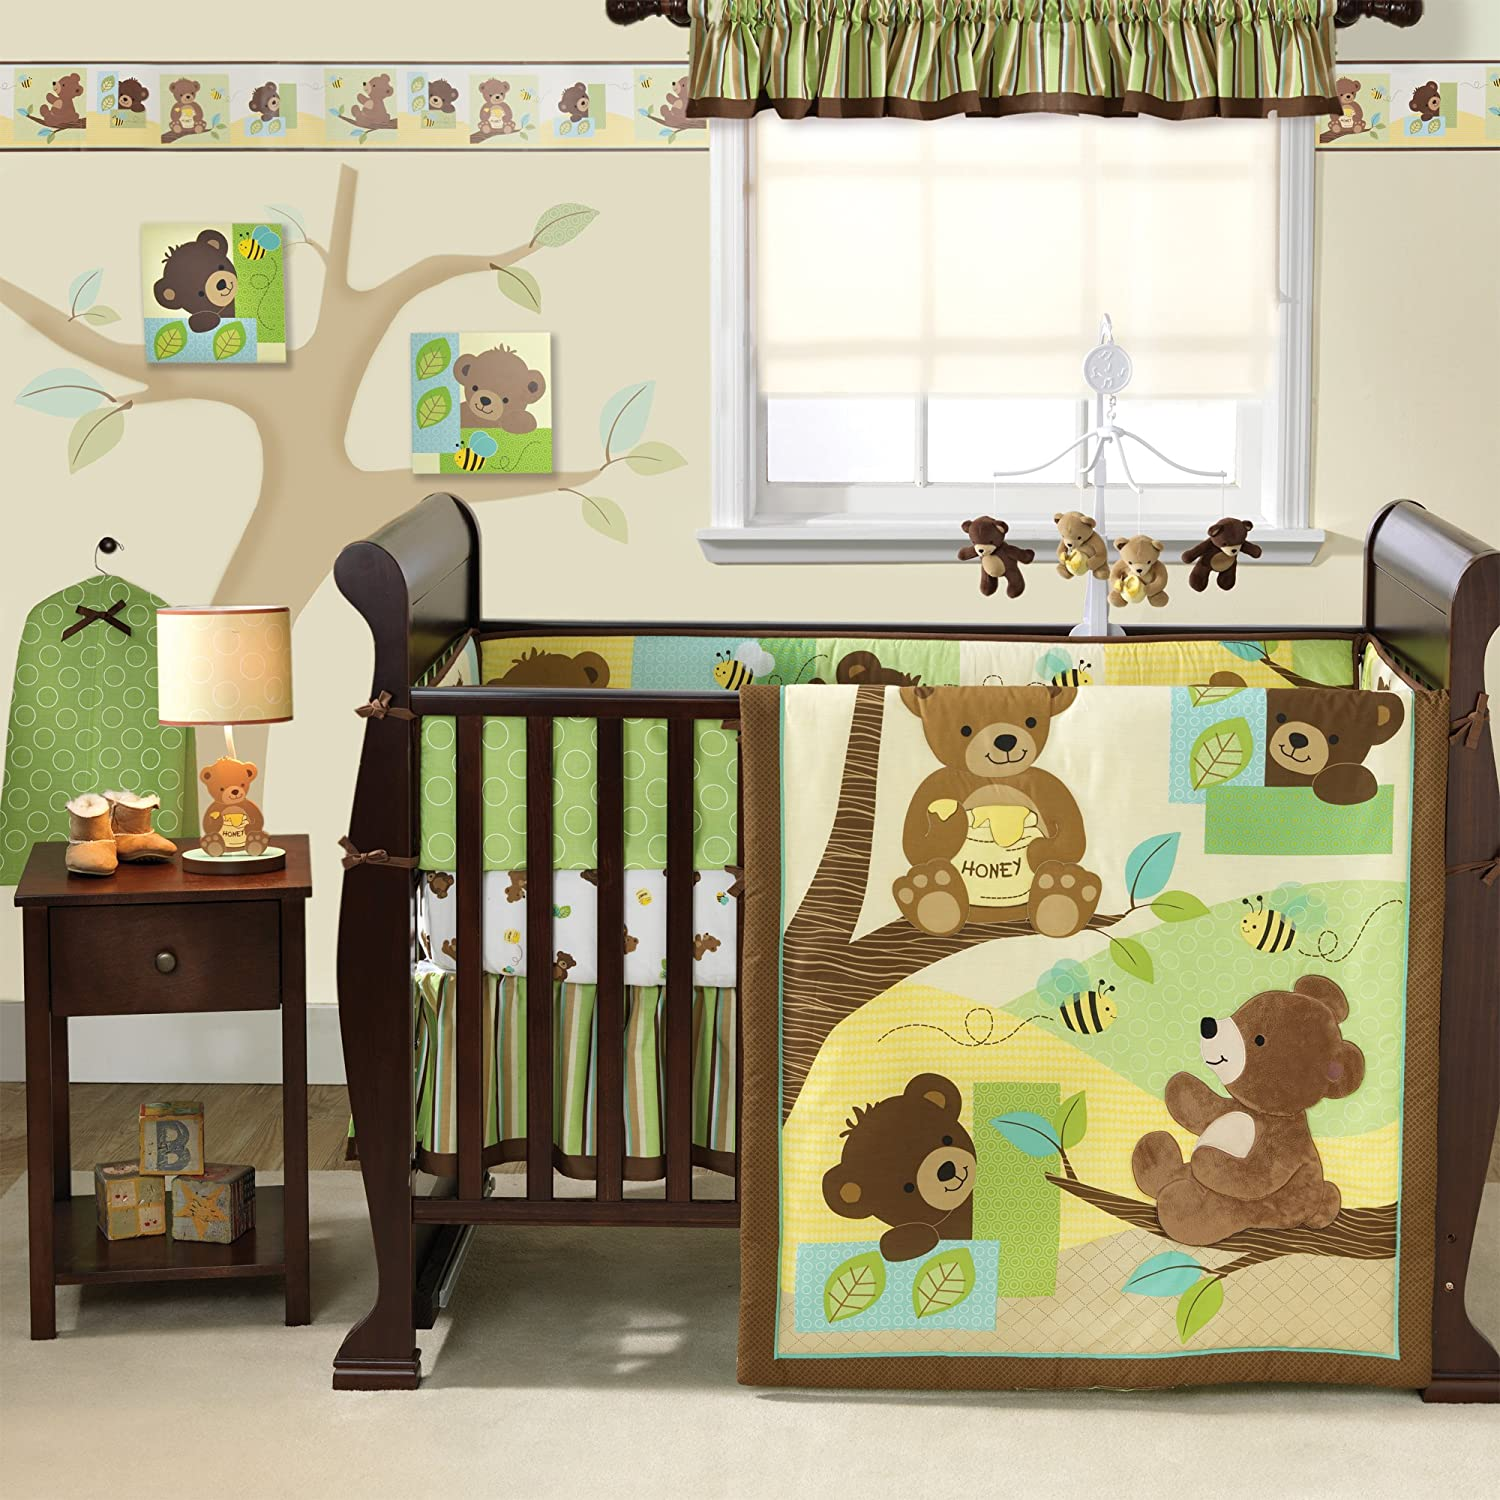 Design Baby Bed Set amazon com bedtime originals honey bear 3 piece crib bedding set browngreen baby